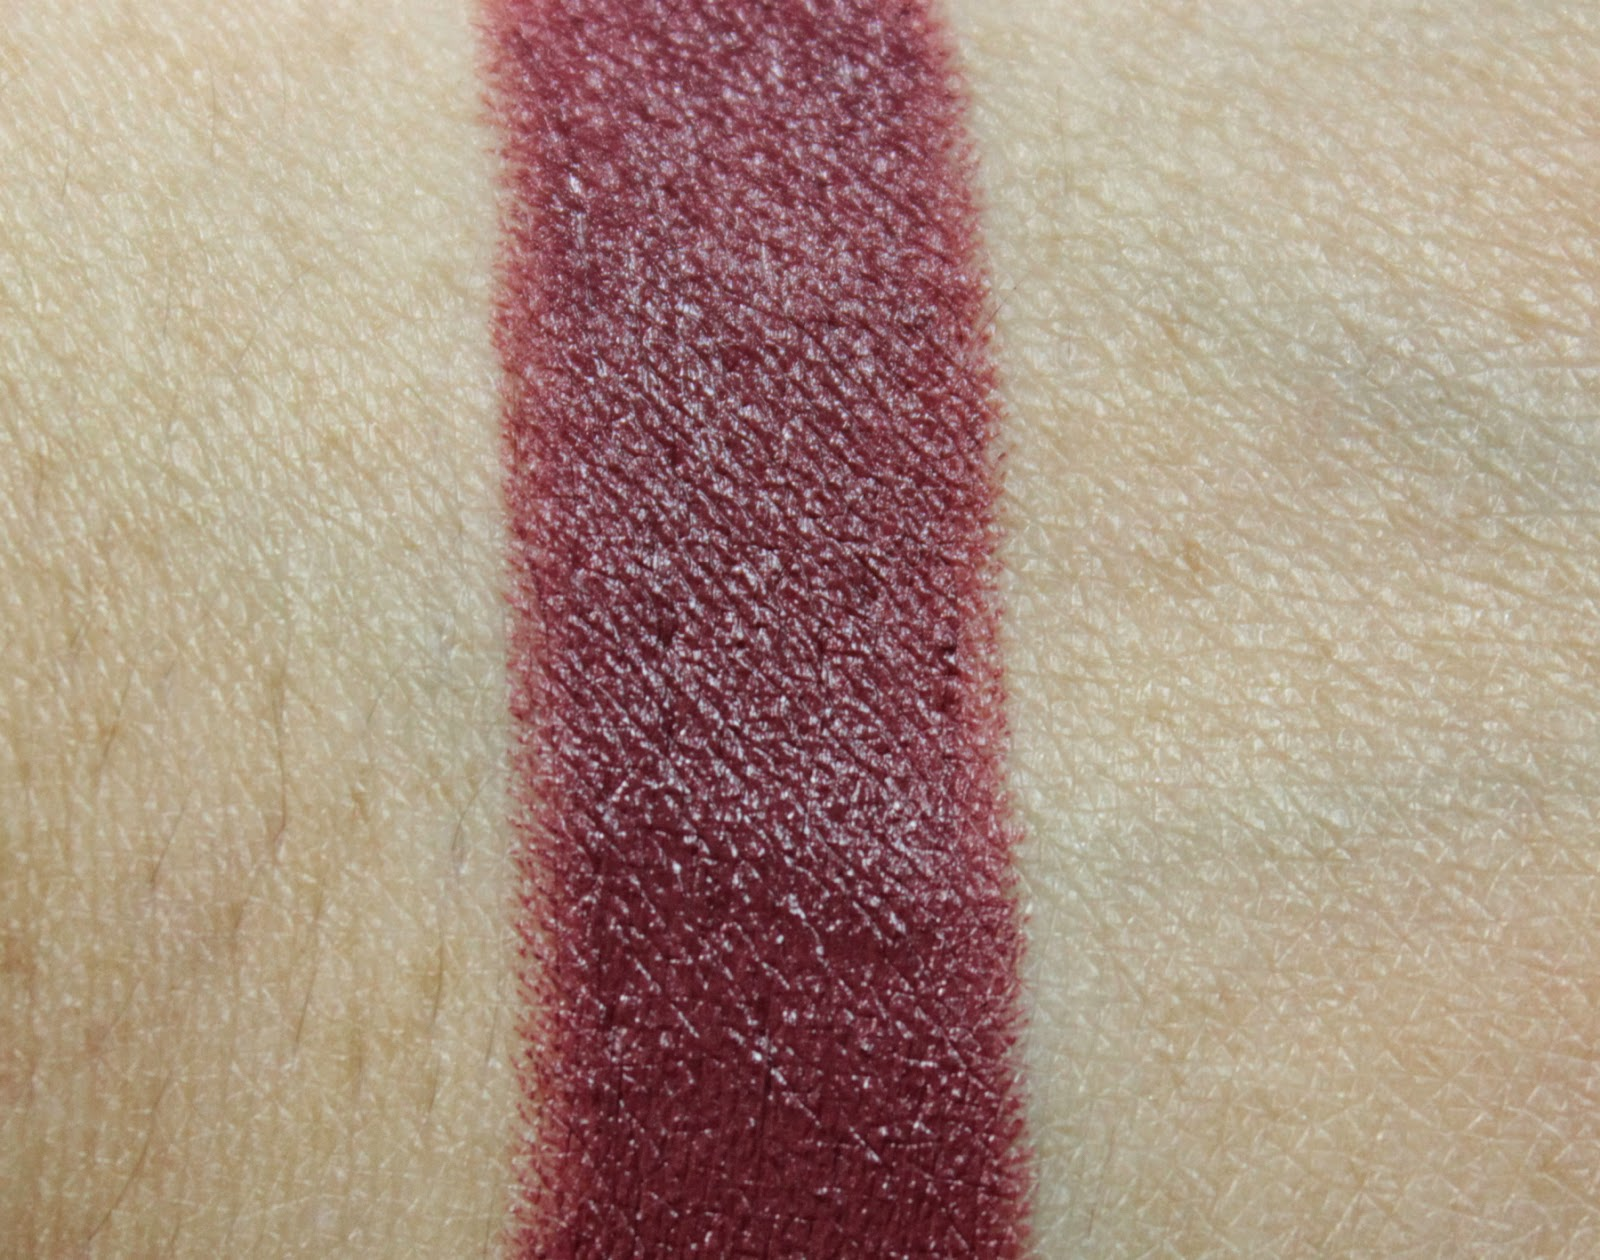 mac, viva glam, marsala, pantone, viva glam 3, hiv, donation, batom, lipstick, collection, coleção, fashion mimi, dark lips, fall, winter, inverno, outono